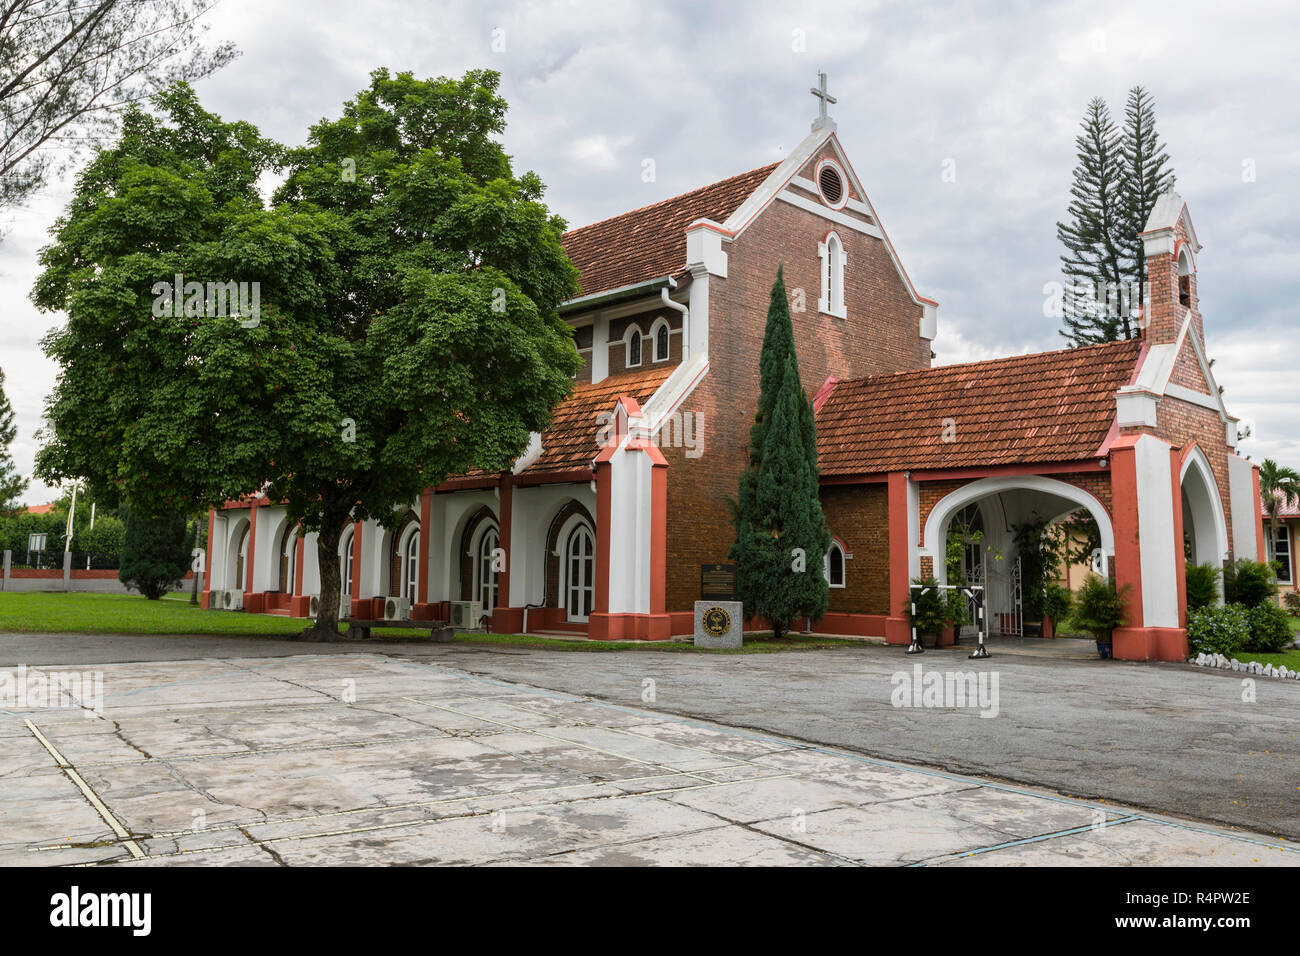 Church of St. John the Divine, Heritage Trail, Ipoh, Malaysia. - Stock Image